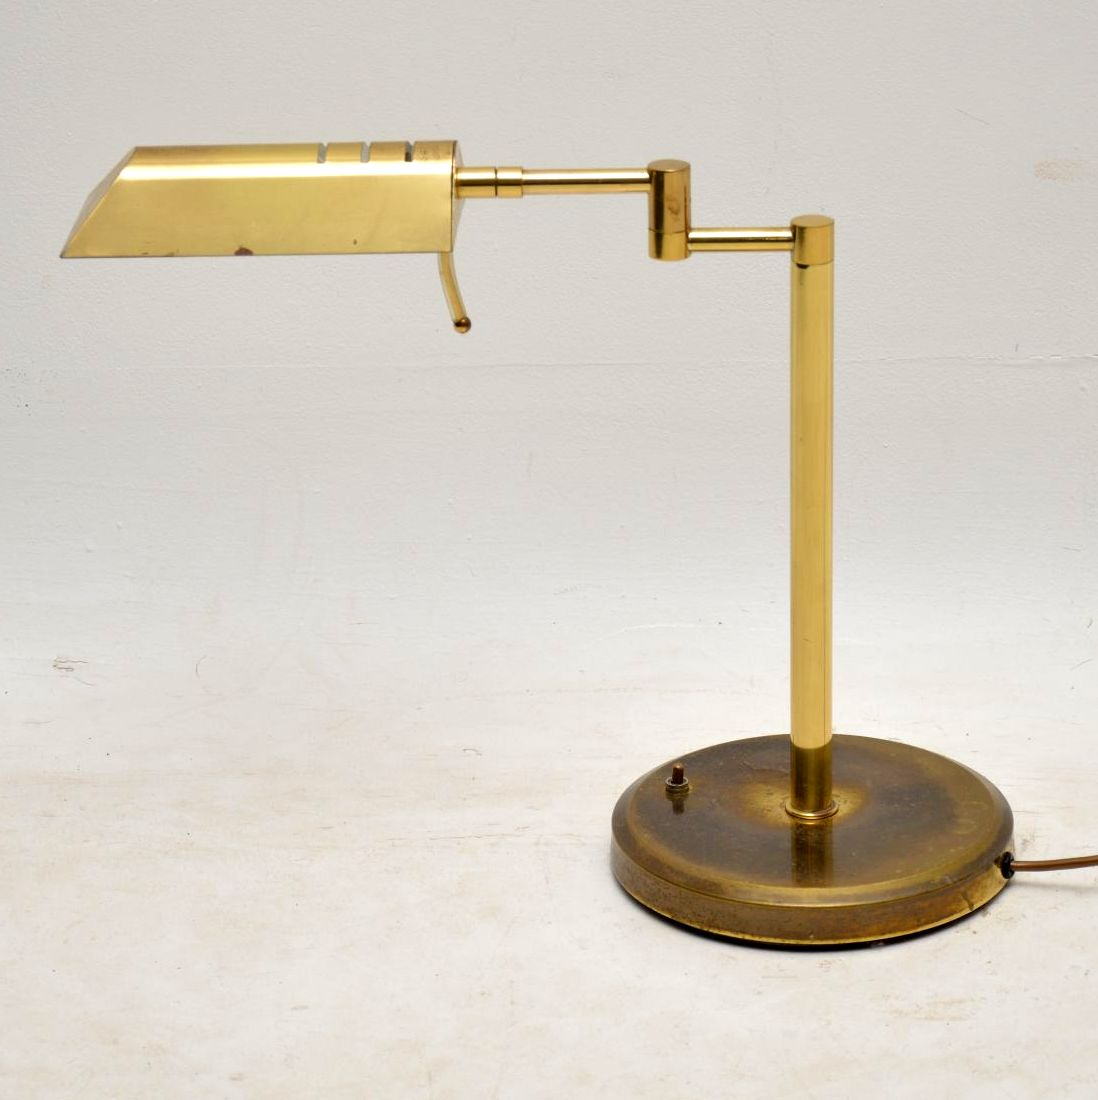 1970 S Vintage Brass Desk Lamp Retrospective Interiors Retro Furniture Vintage Mid Century Furniture Vintage Danish Modern Furniture Antique Furniture London